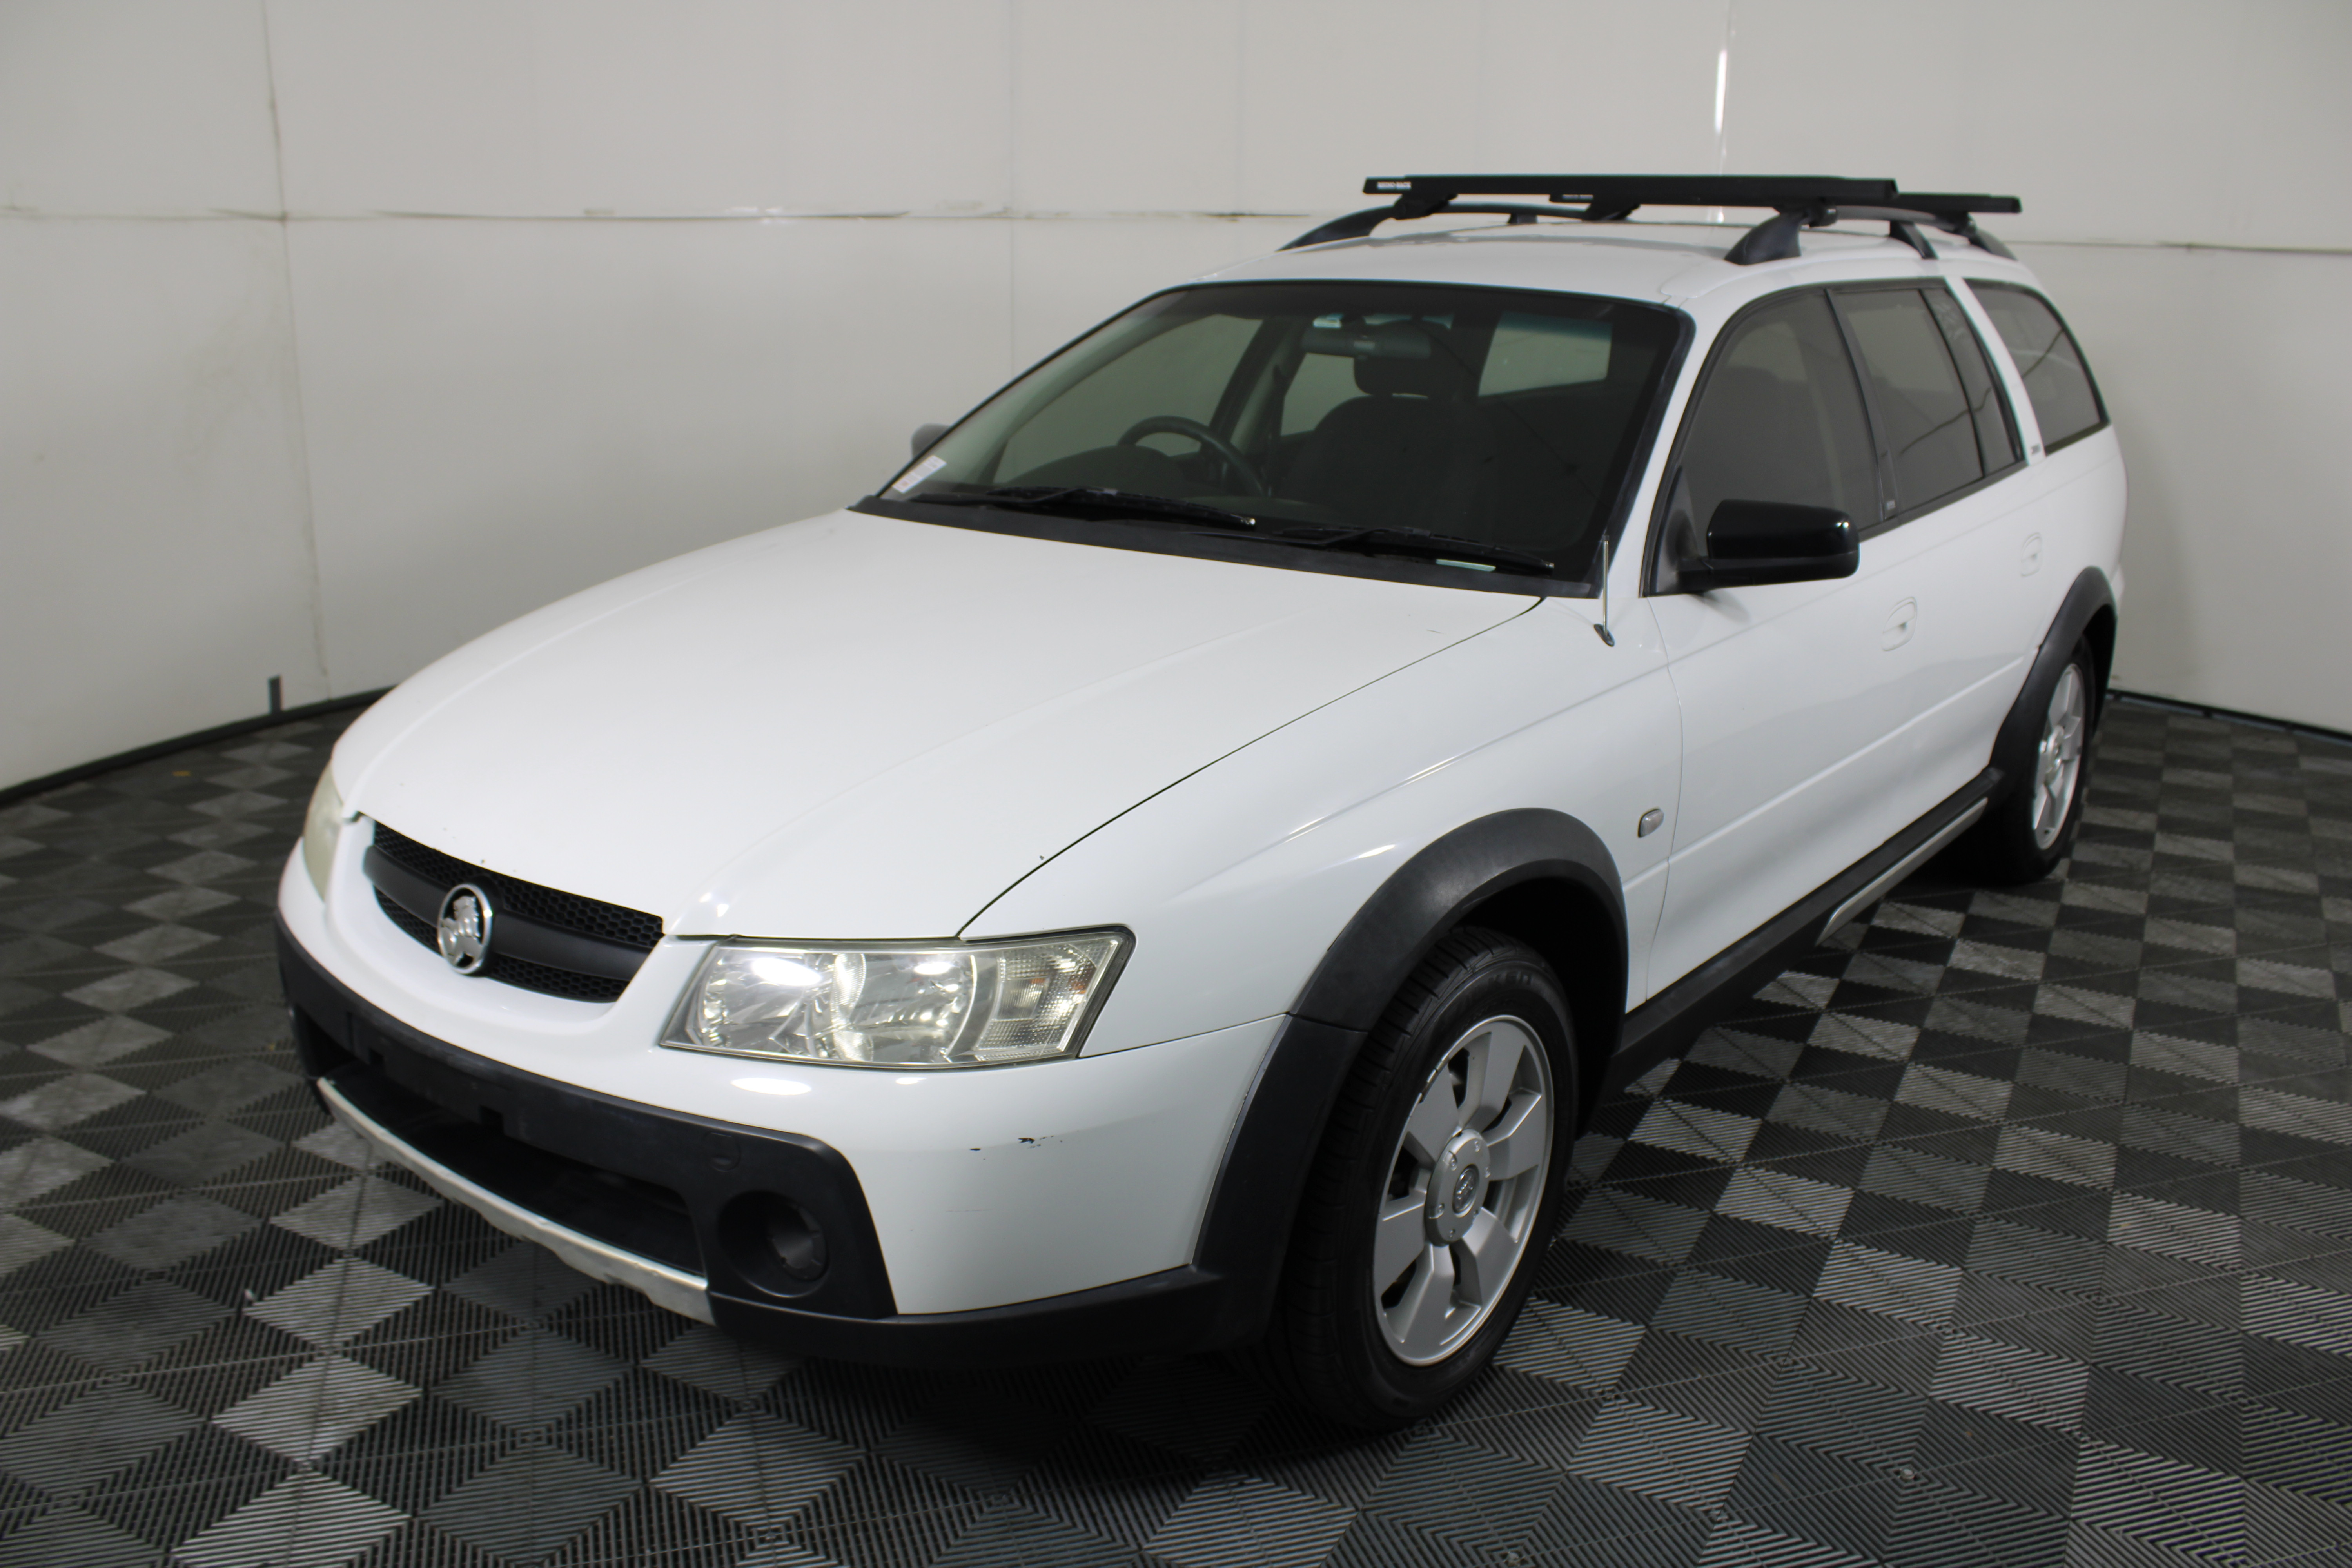 2006 Holden Adventra SX6 VZ Automatic Wagon (WOVR - Inspected)